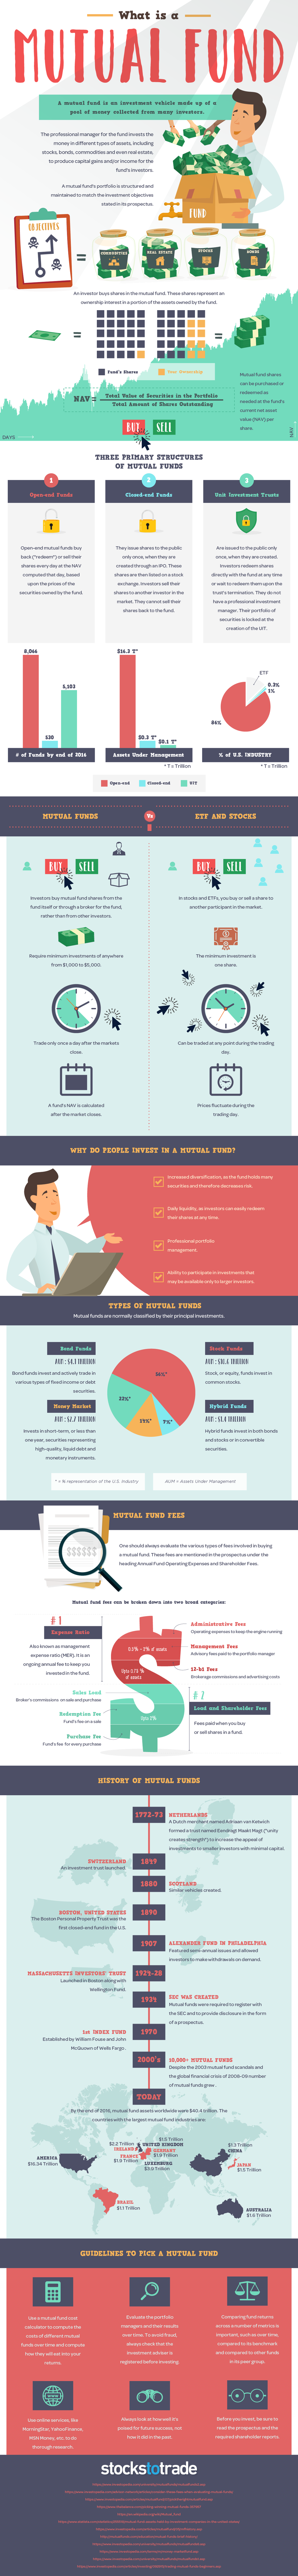 Infographic: What is a Mutual Fund?